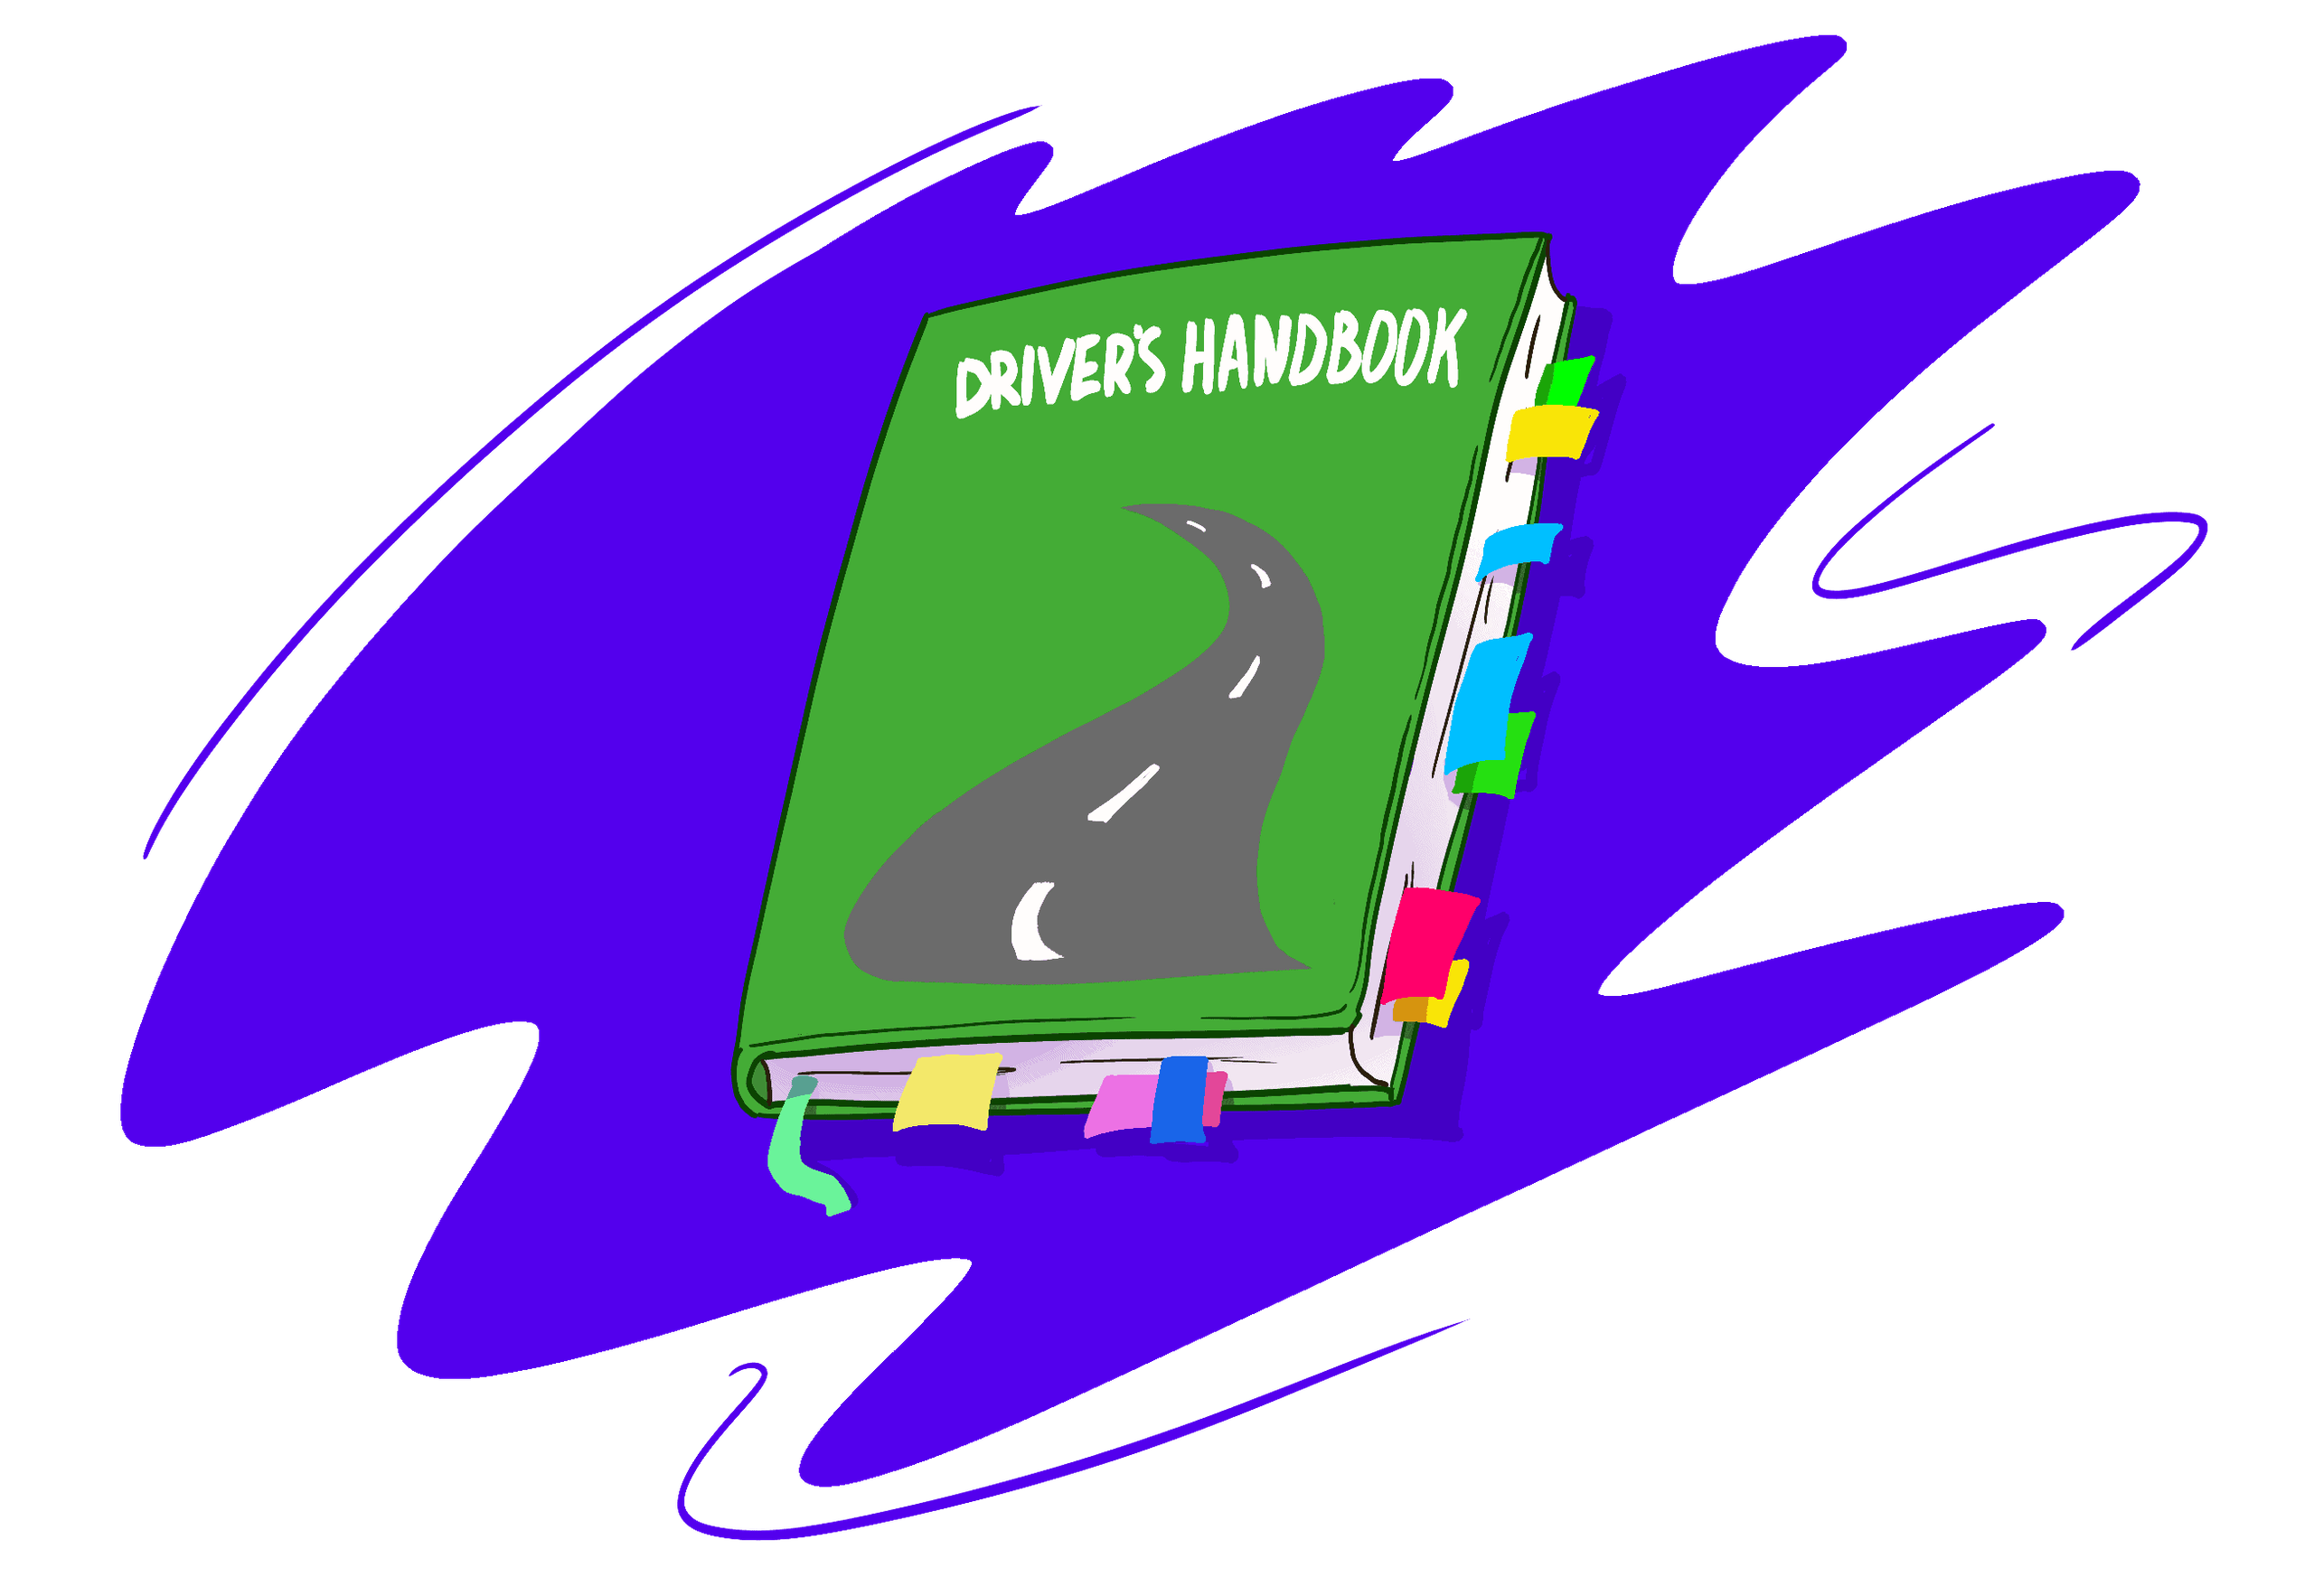 a version of the drivers handbook